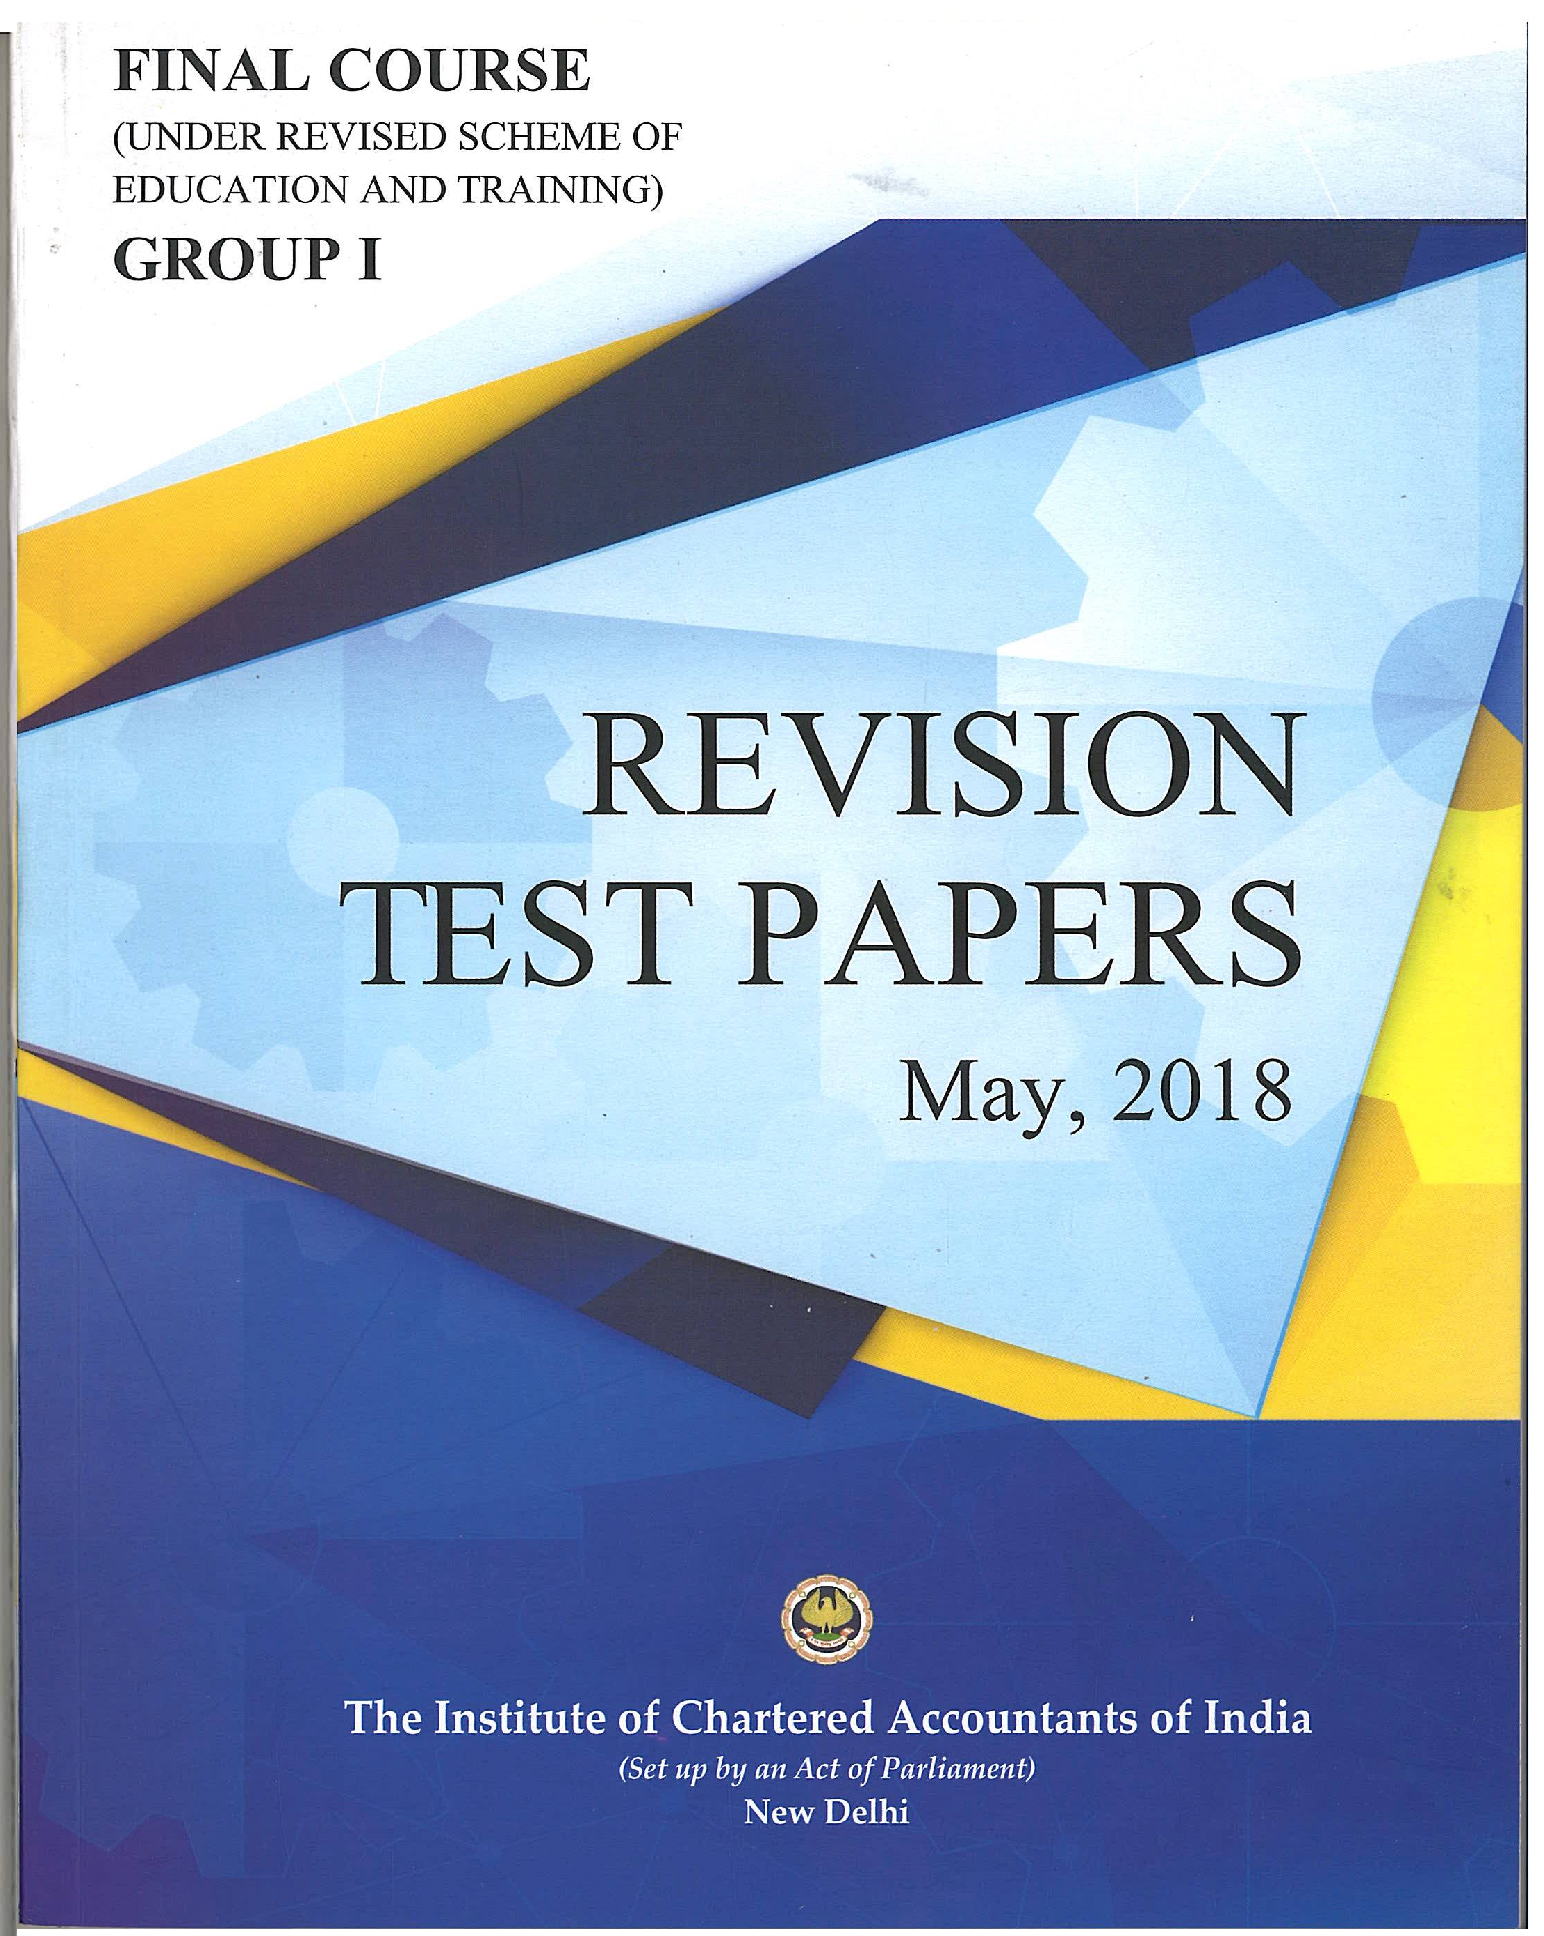 Final Course (Under New Scheme) Revision Test Papers Group - I May, 2018